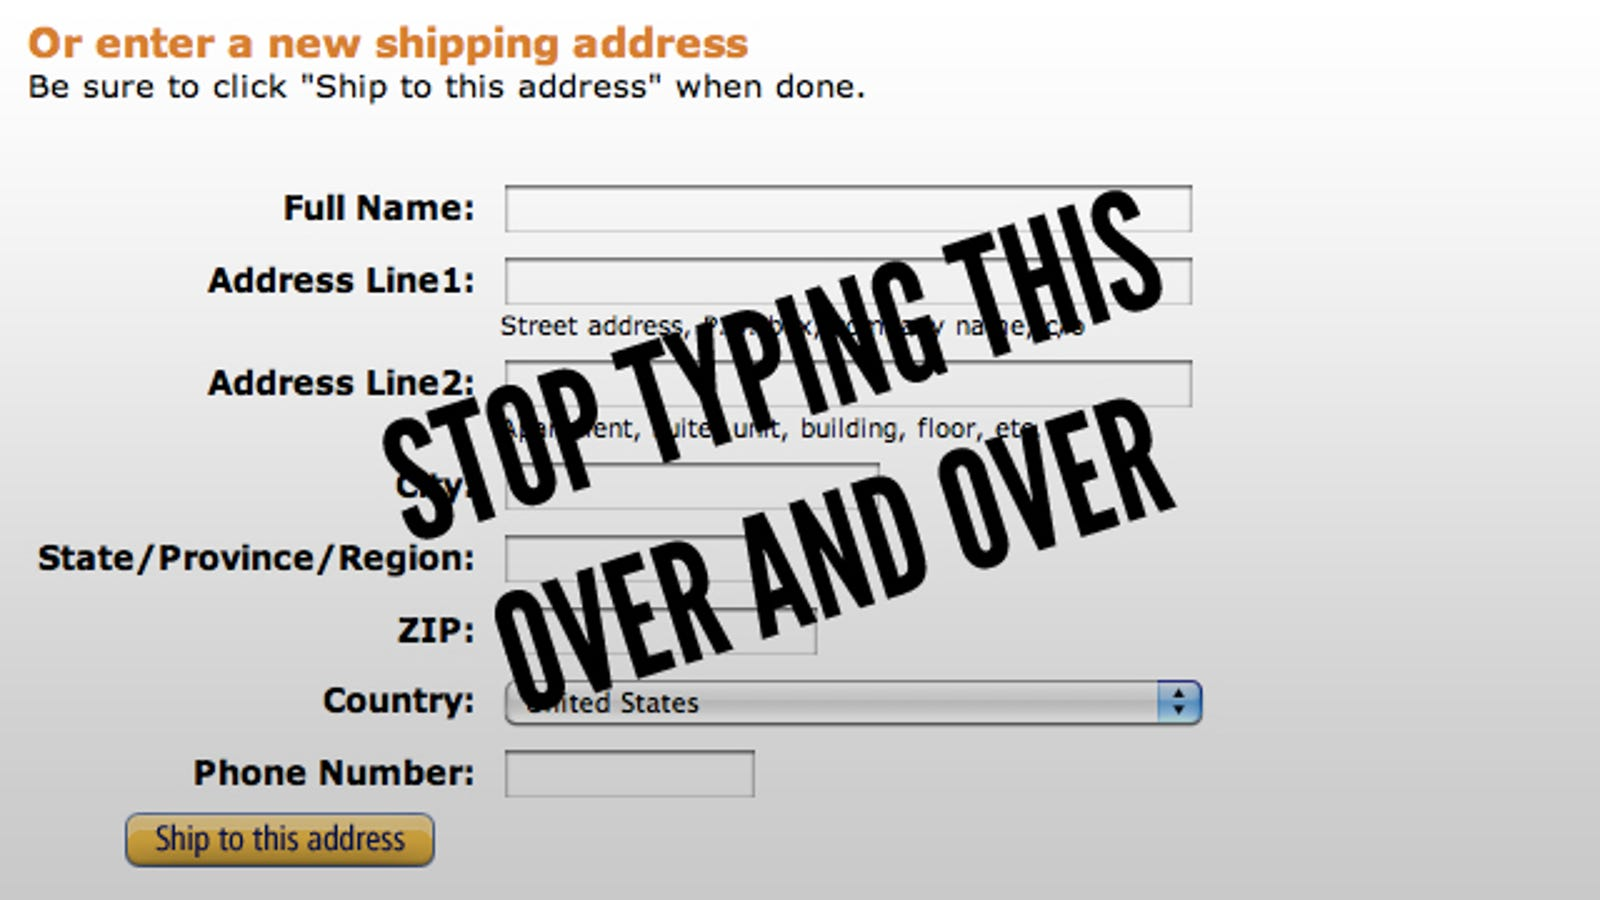 How to Automatically Fill in Repetitive Web Forms (and Avoid Tons of